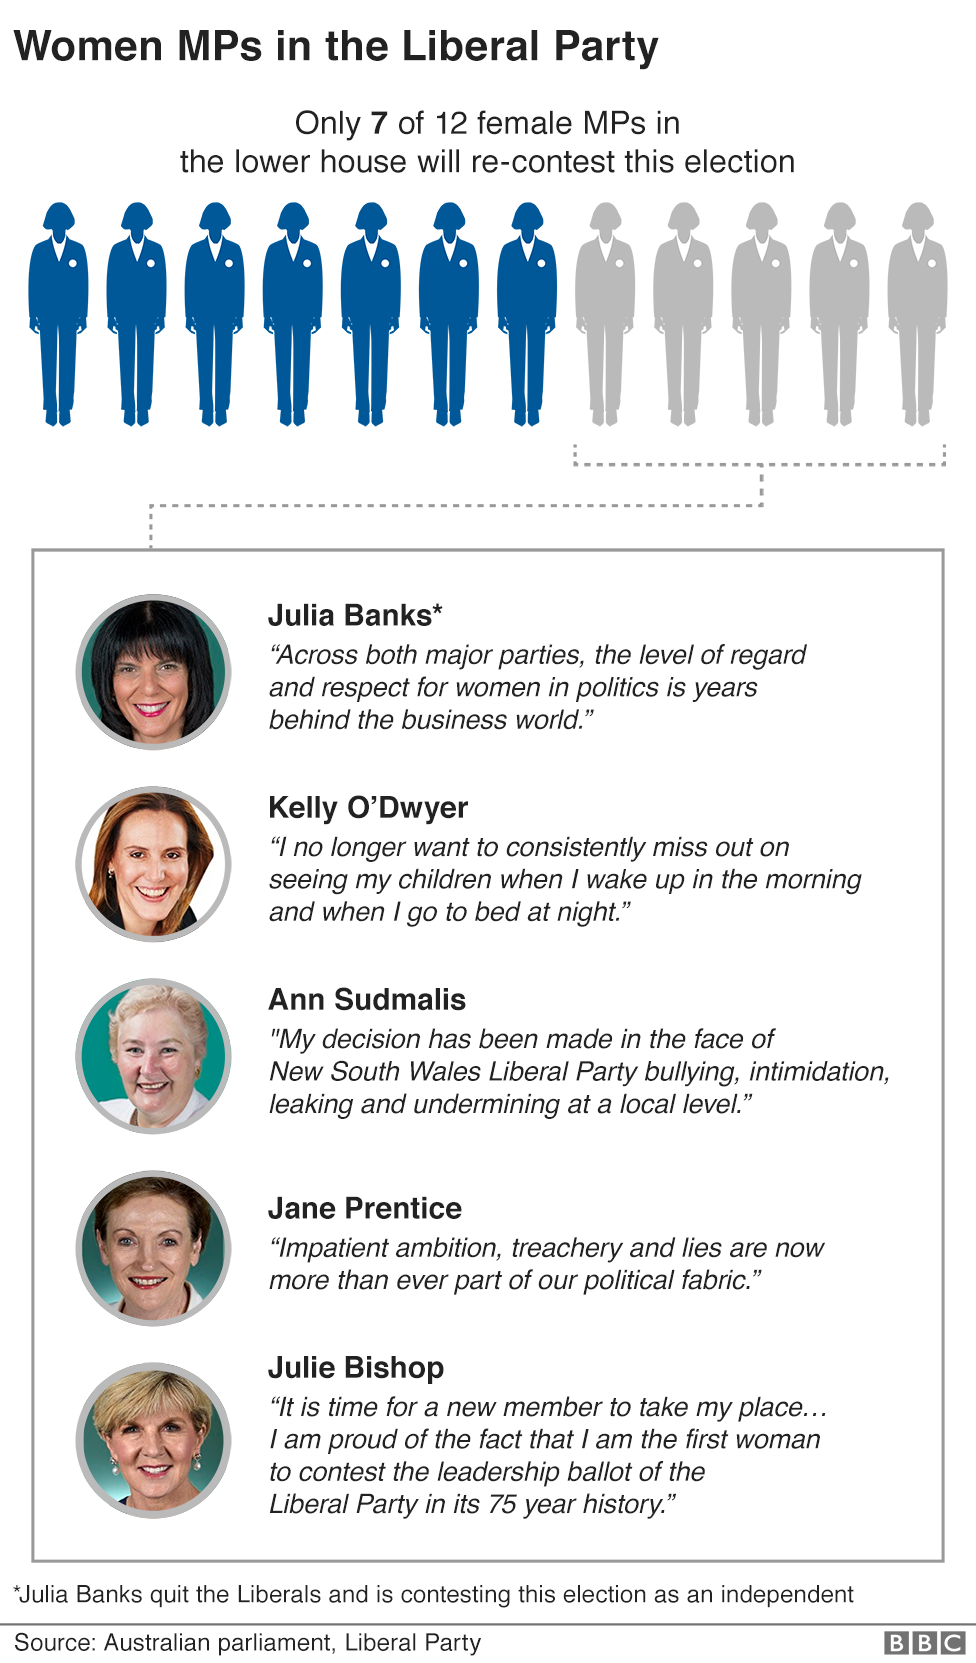 """A graphic titled: """"Women MPs in the Liberal Party: Only 7 of 12 female MPs in the lower house will re-contest this election."""" The graphic shows 12 female figures - seven are shown as blue but five are grey to represent women who are not re-contesting the election."""